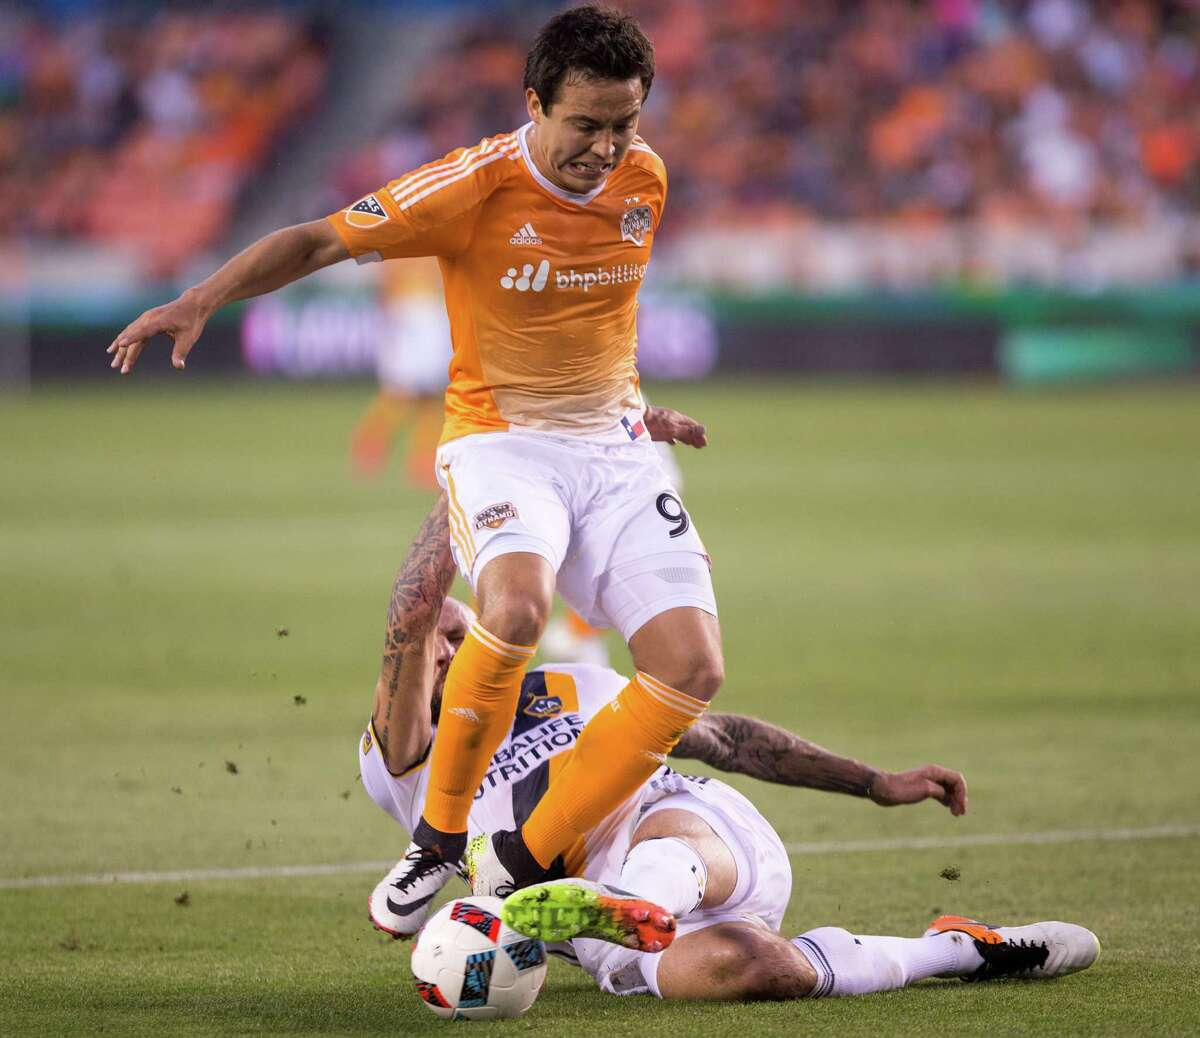 Houston Dynamo forward Erick Torres (9) is slide tackle by Los Angeles Galaxy defender Jelle Van Damme (37) on the field during the second half of action during a soccer game at the BBVA Stadium, Friday, Apr. 15, 2016, in Houston. Los Angeles Galaxy defeated Houston Dynamo 4-1. ( Juan DeLeon / For the Houston Chronicle )